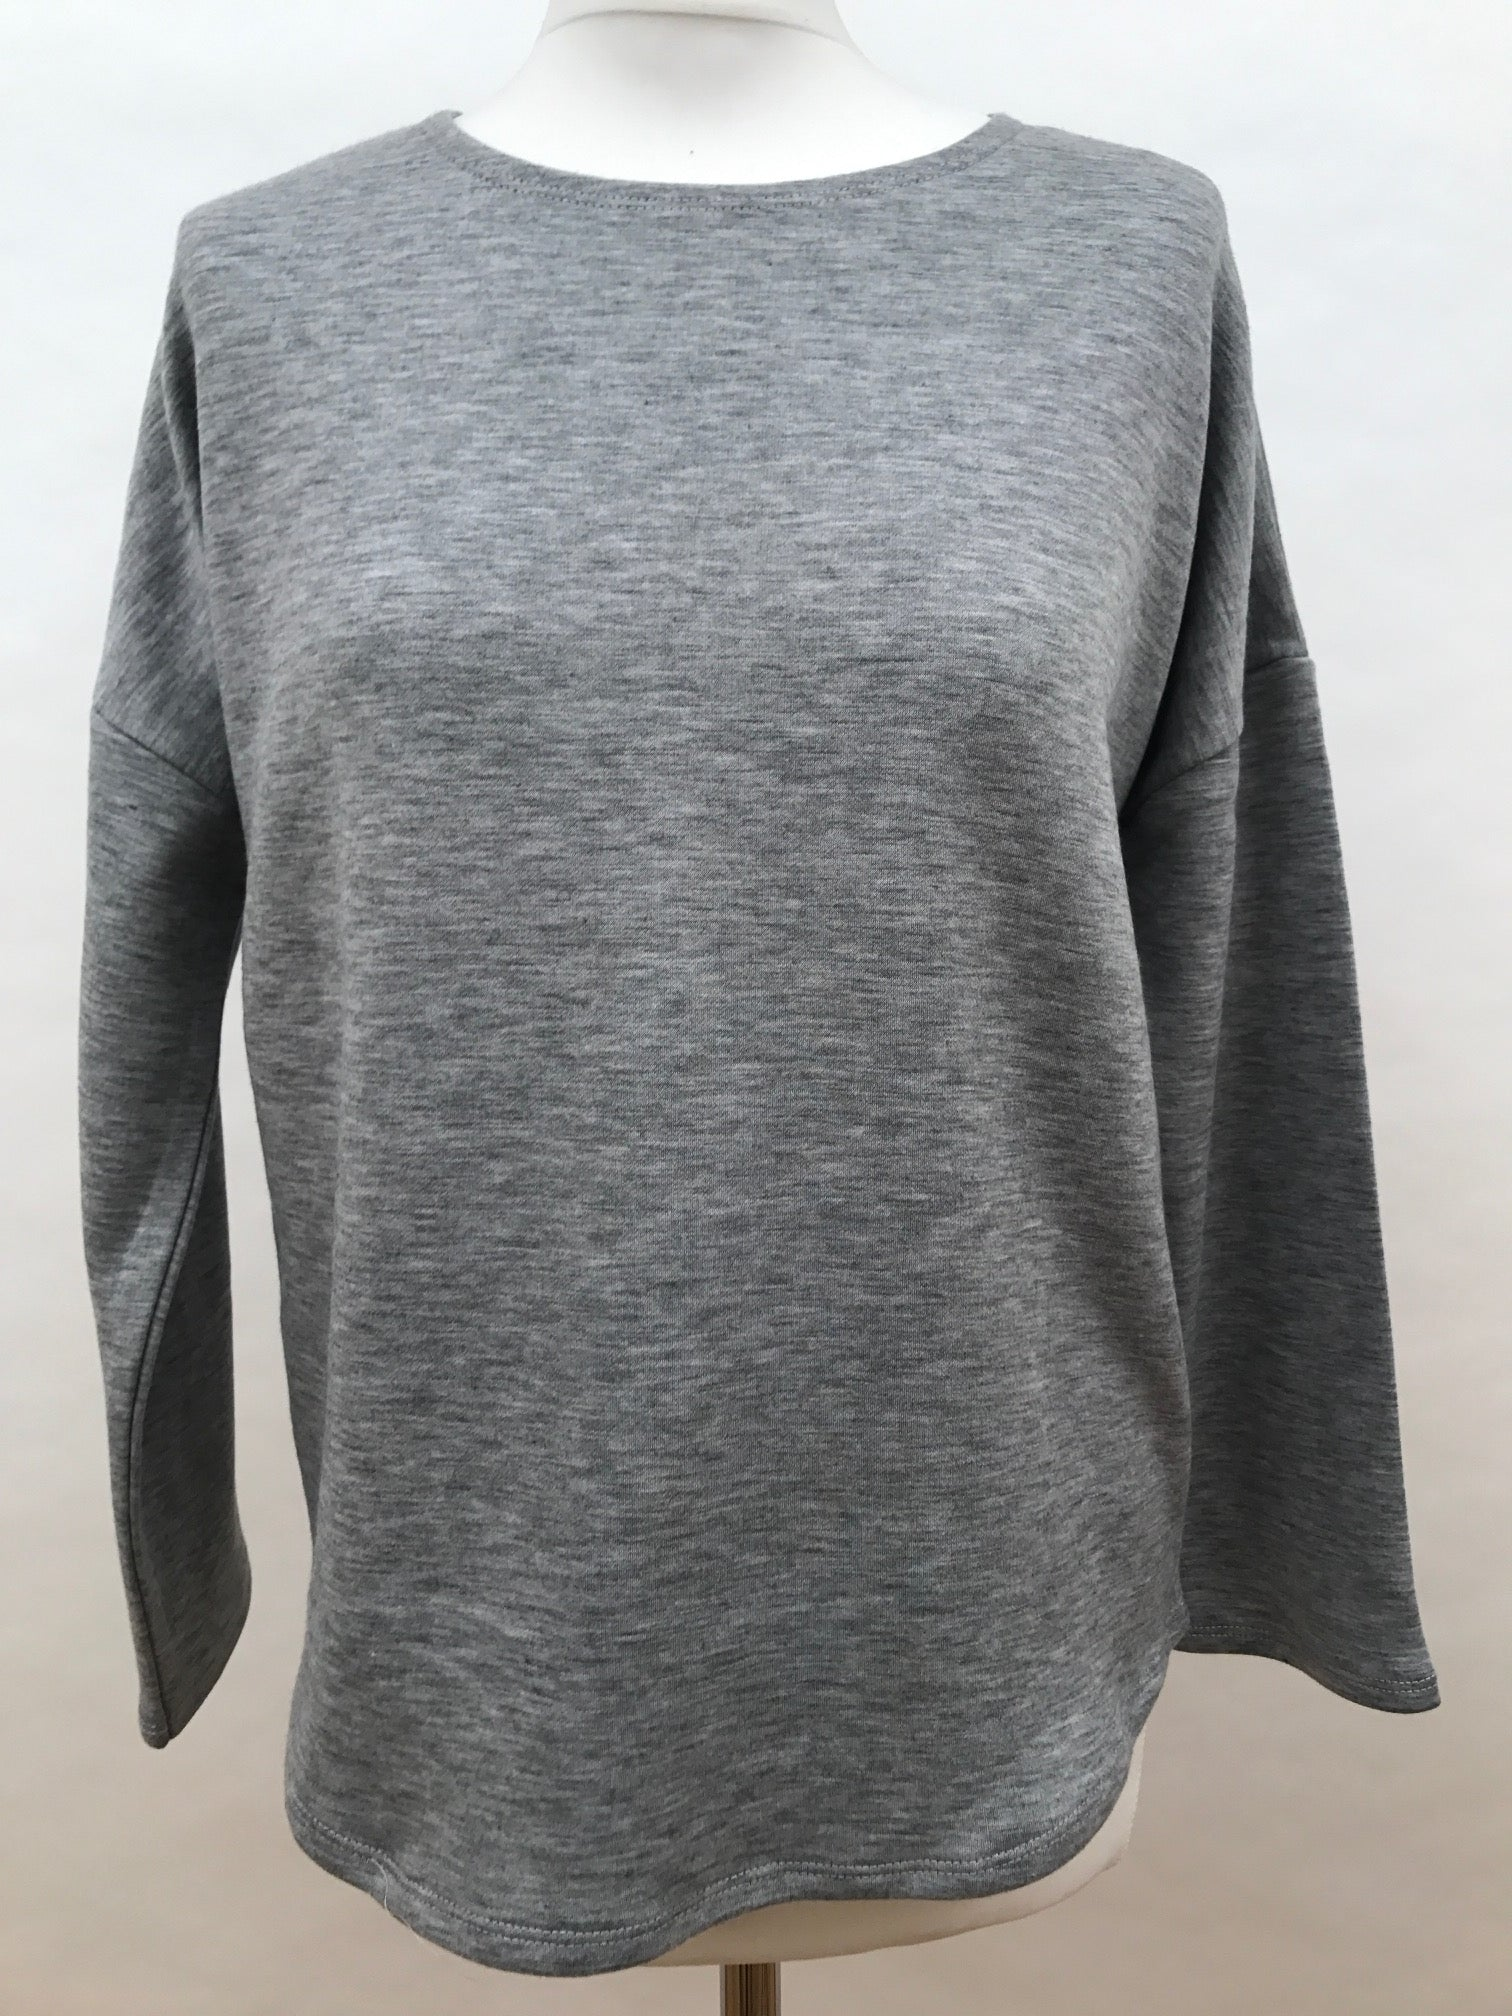 Long Sleeve Top - Plain Grey